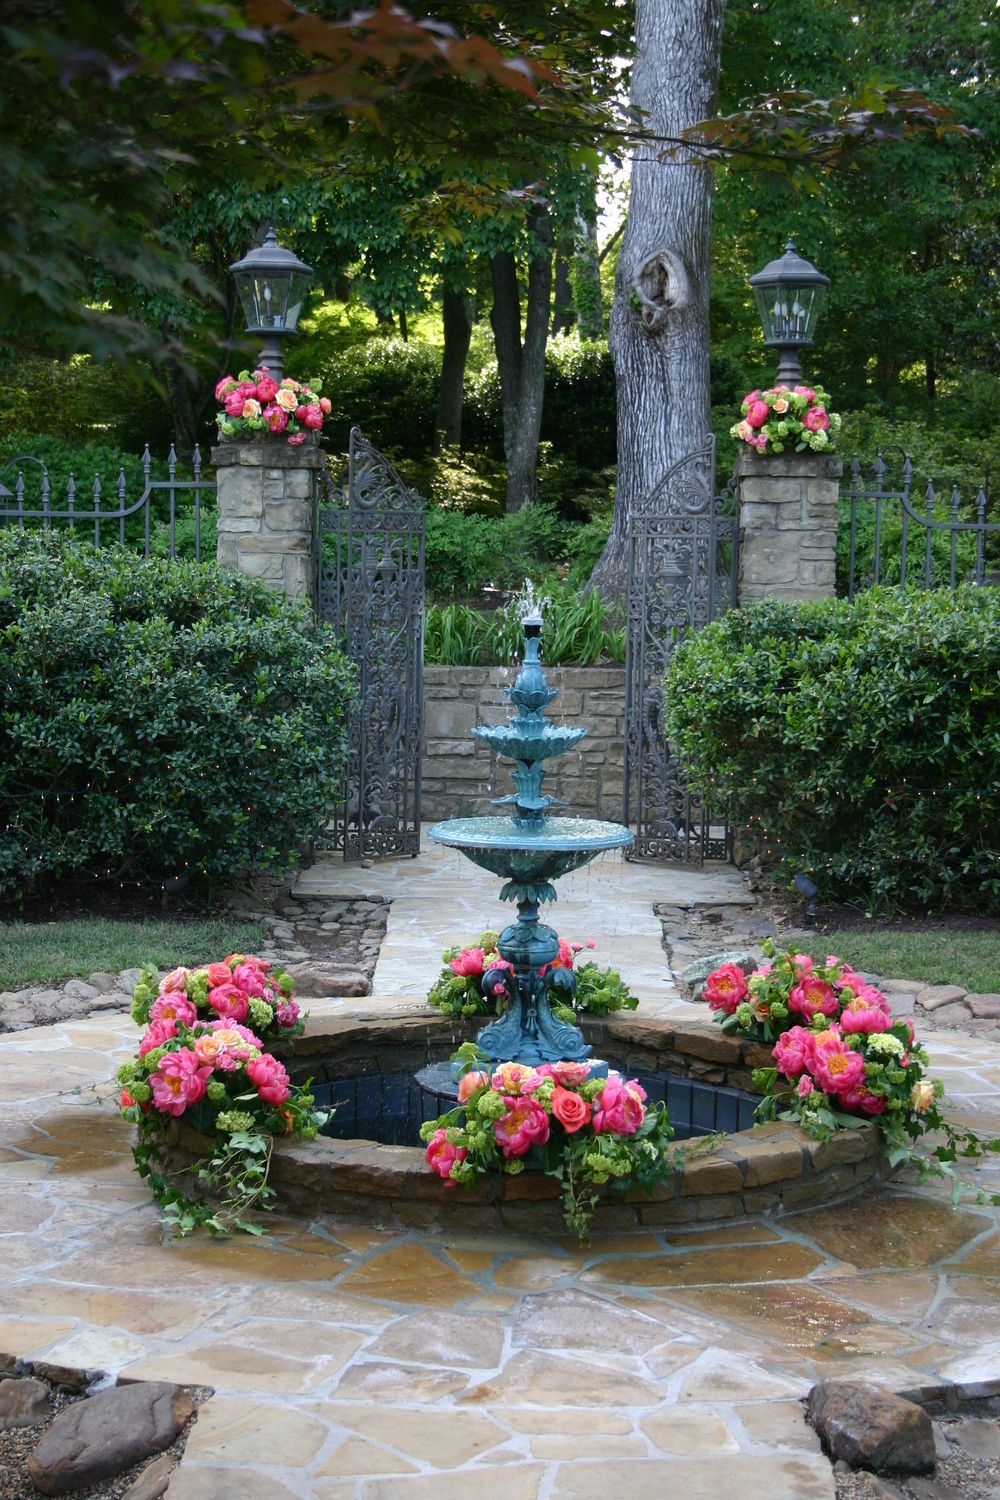 Fountain flowers including Coral Charm Peonies and Viburnum and a private home.